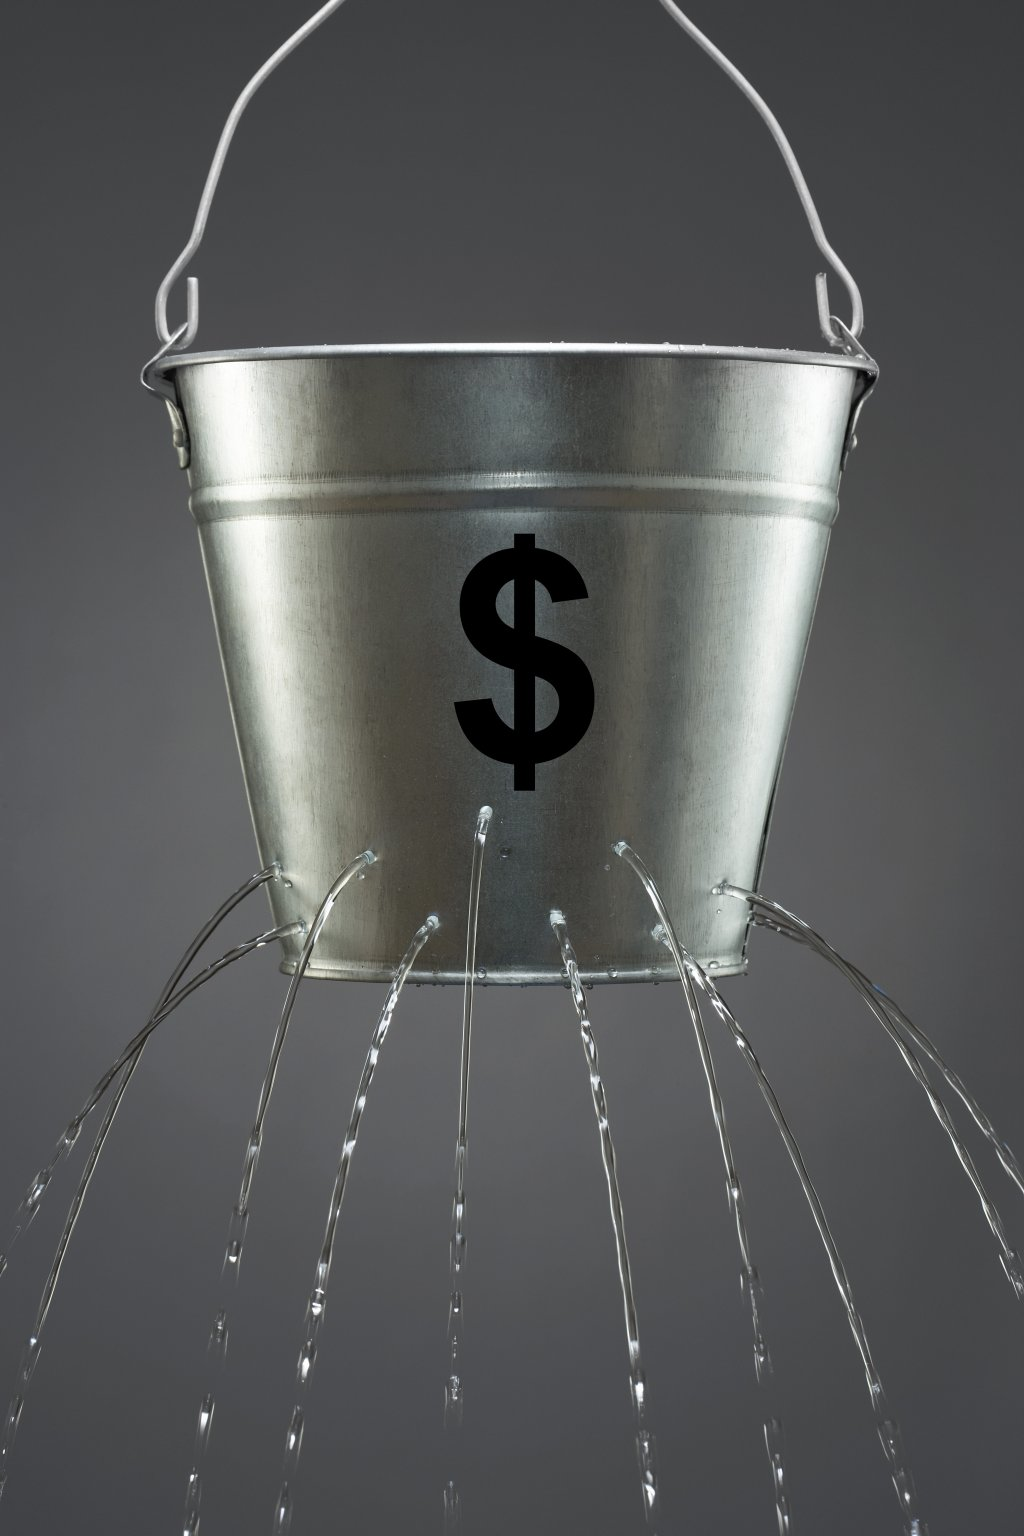 leaky demand generation funnel